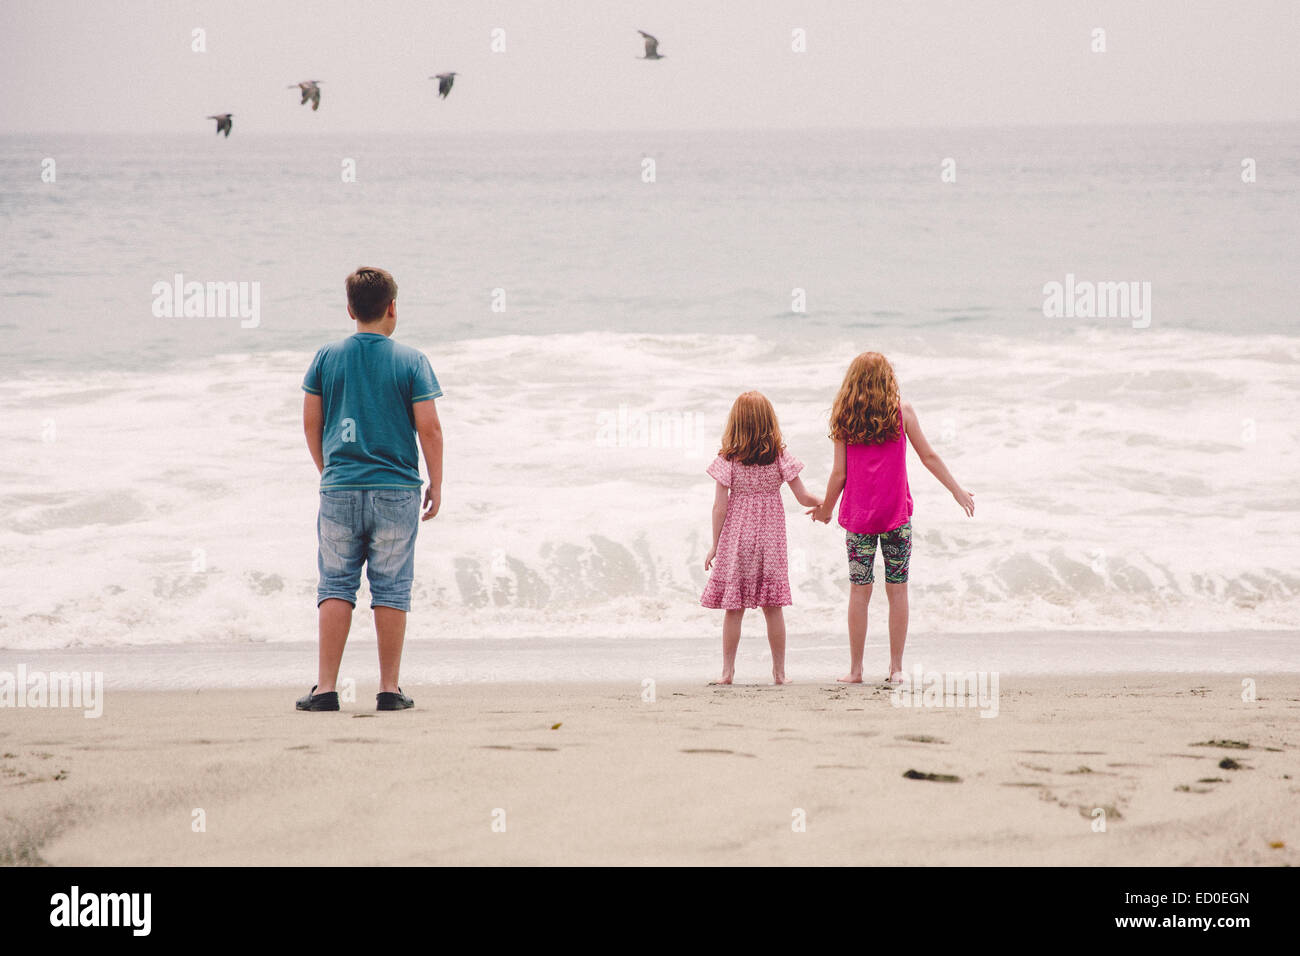 USA, California, Los Angeles, Children (6-7, 8-9, 12-13) watching waves breaking on beach - Stock Image